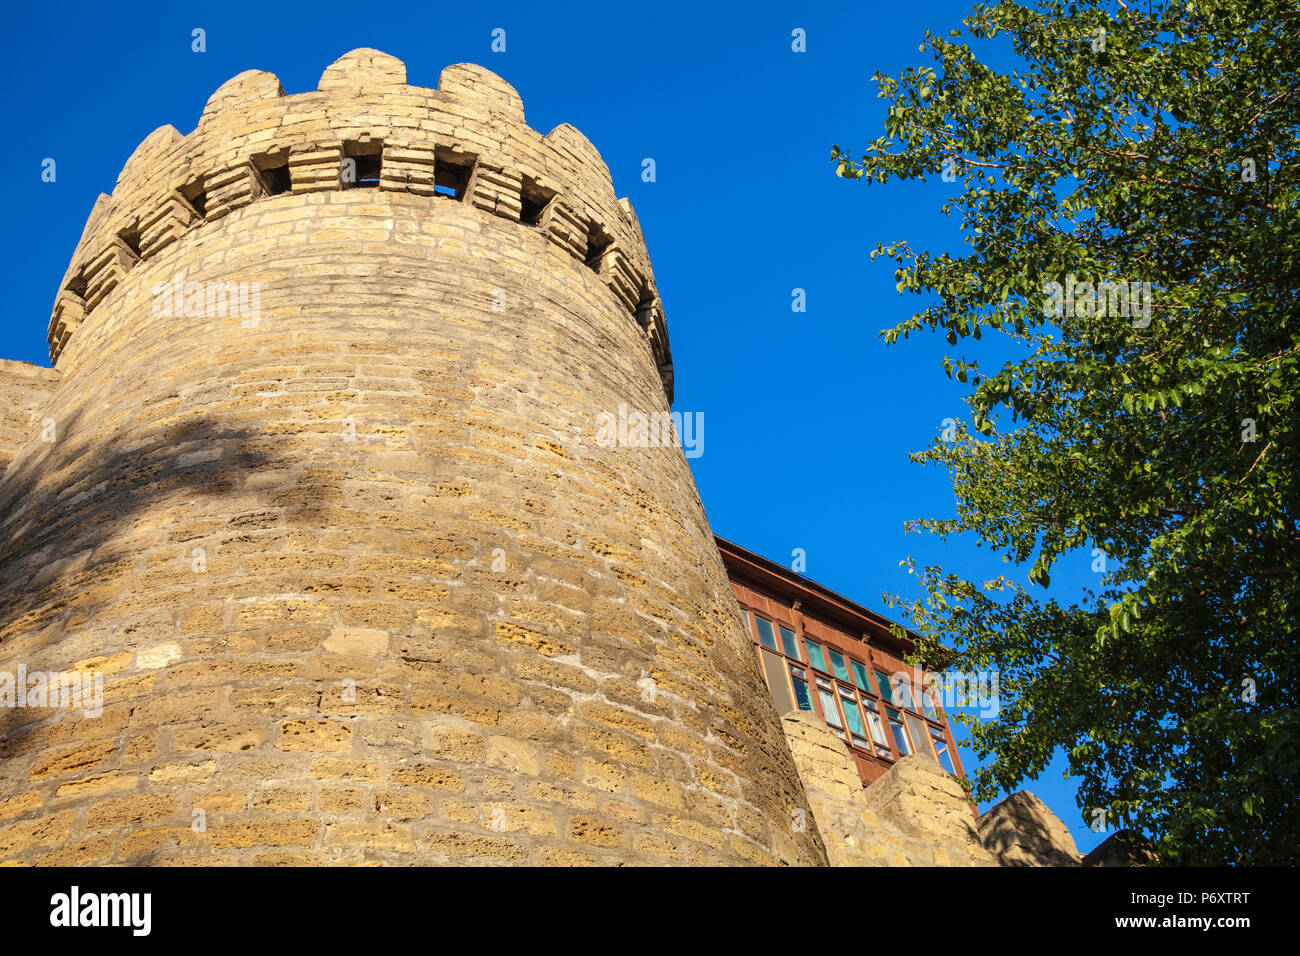 Azerbaijan, Baku, 12th-century defensive walls of The Old Town - Icheri Sheher, - Stock Image